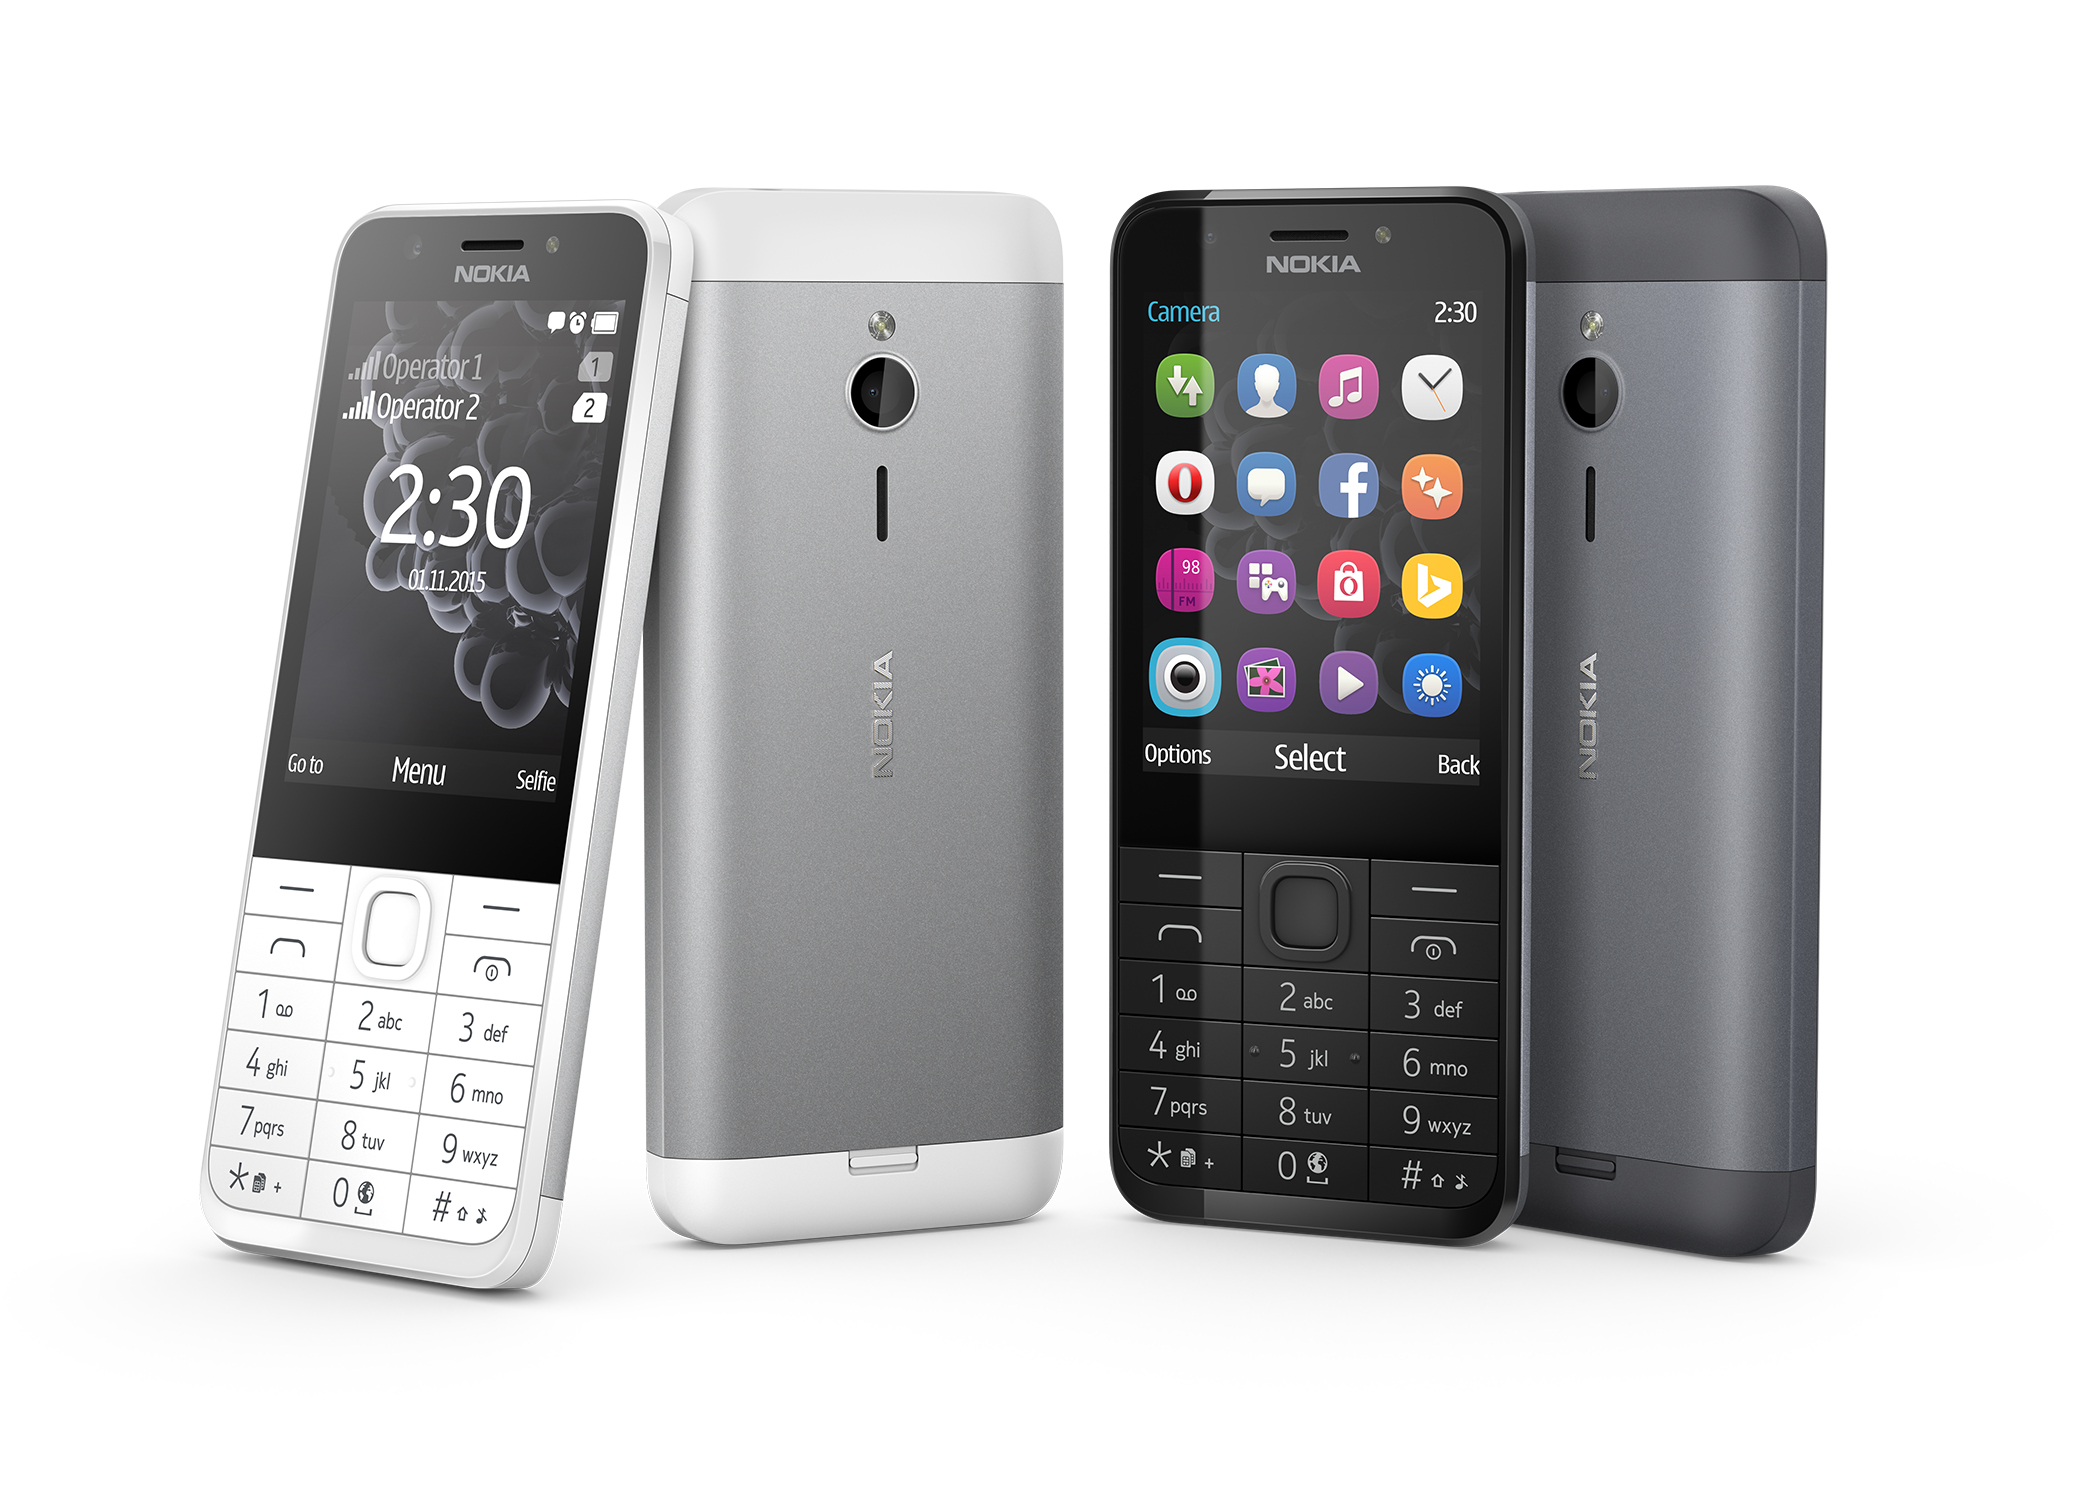 4 Pics 1 Word Answers 5 Letters - 4 Pics 1 Word Answers All nokia phone models images